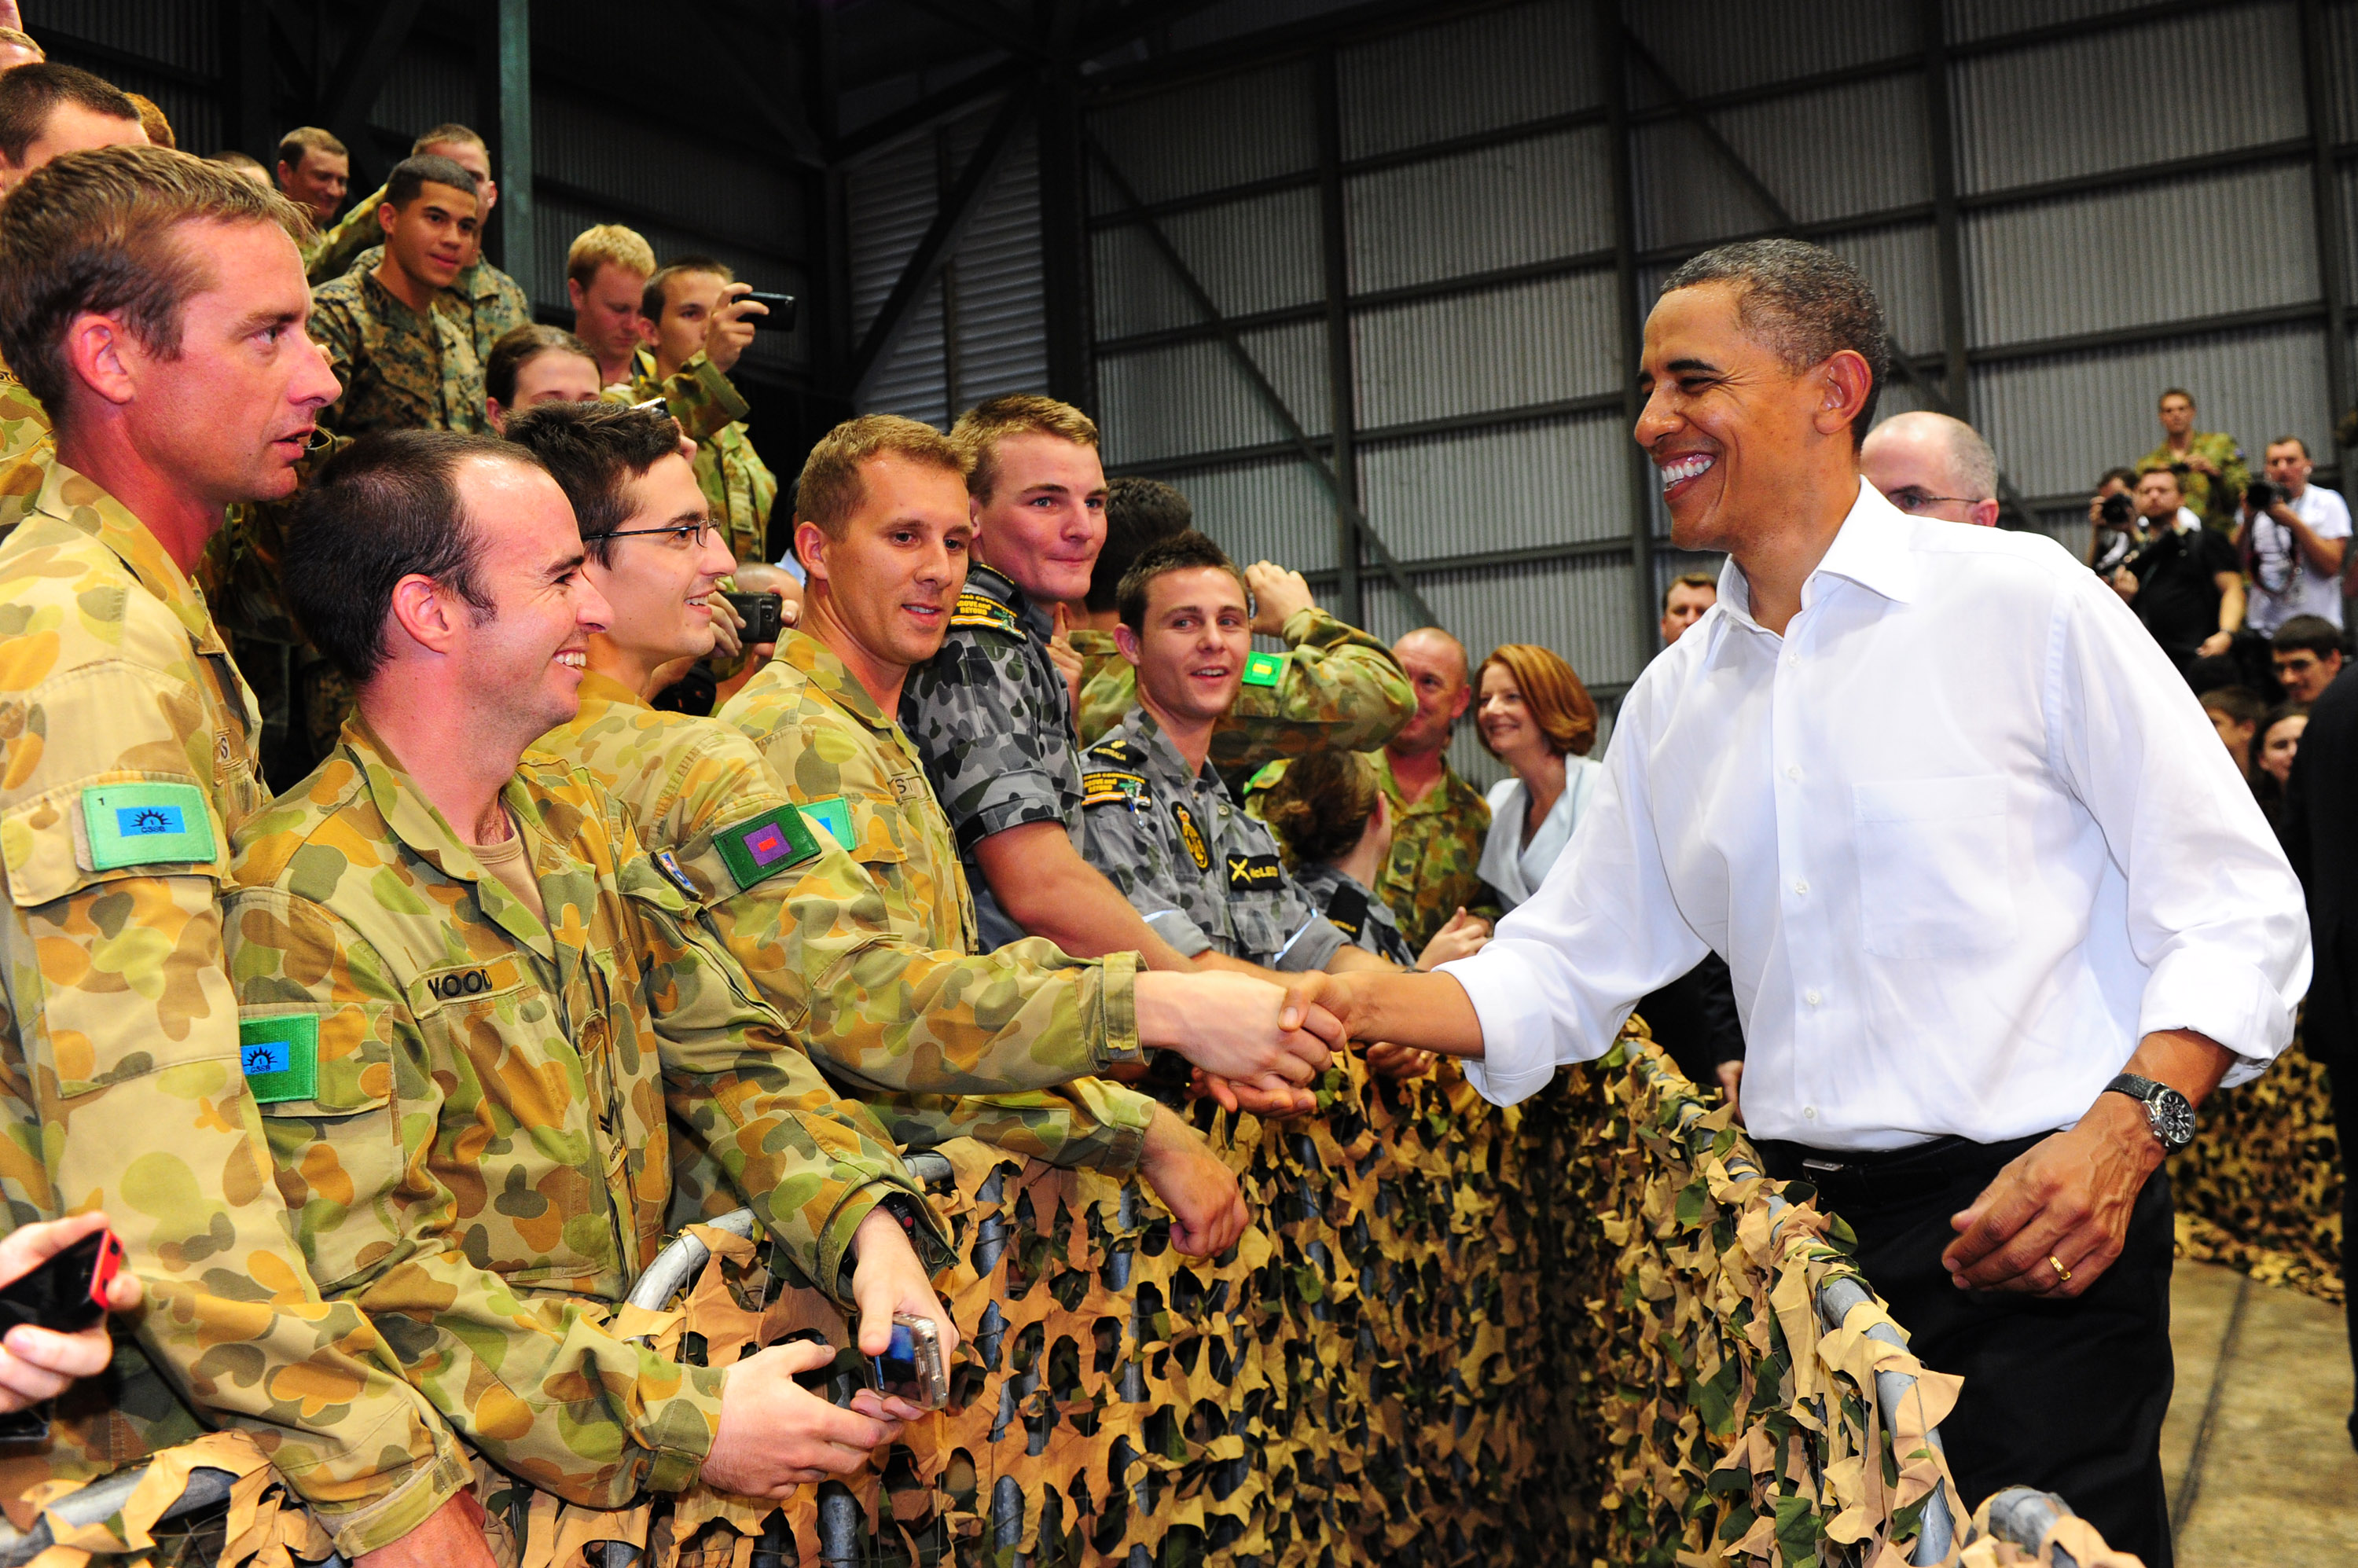 President Barack Obama meets ADF personnel at the conclusion of his visit to RAAF Base Darwin.